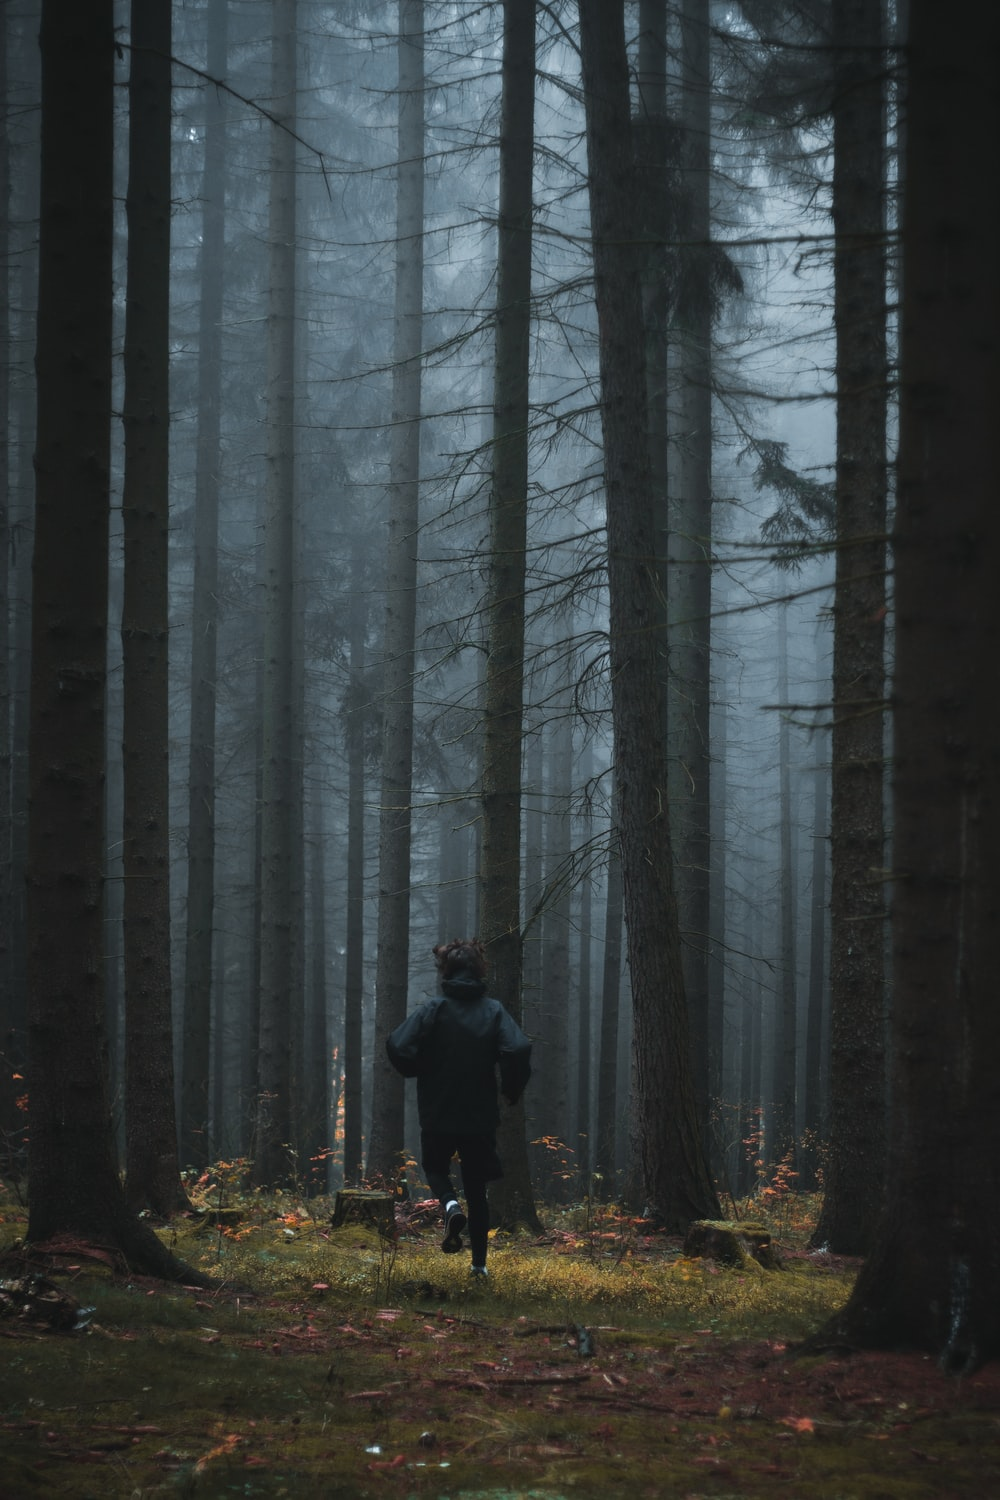 person running in forest trees with mist